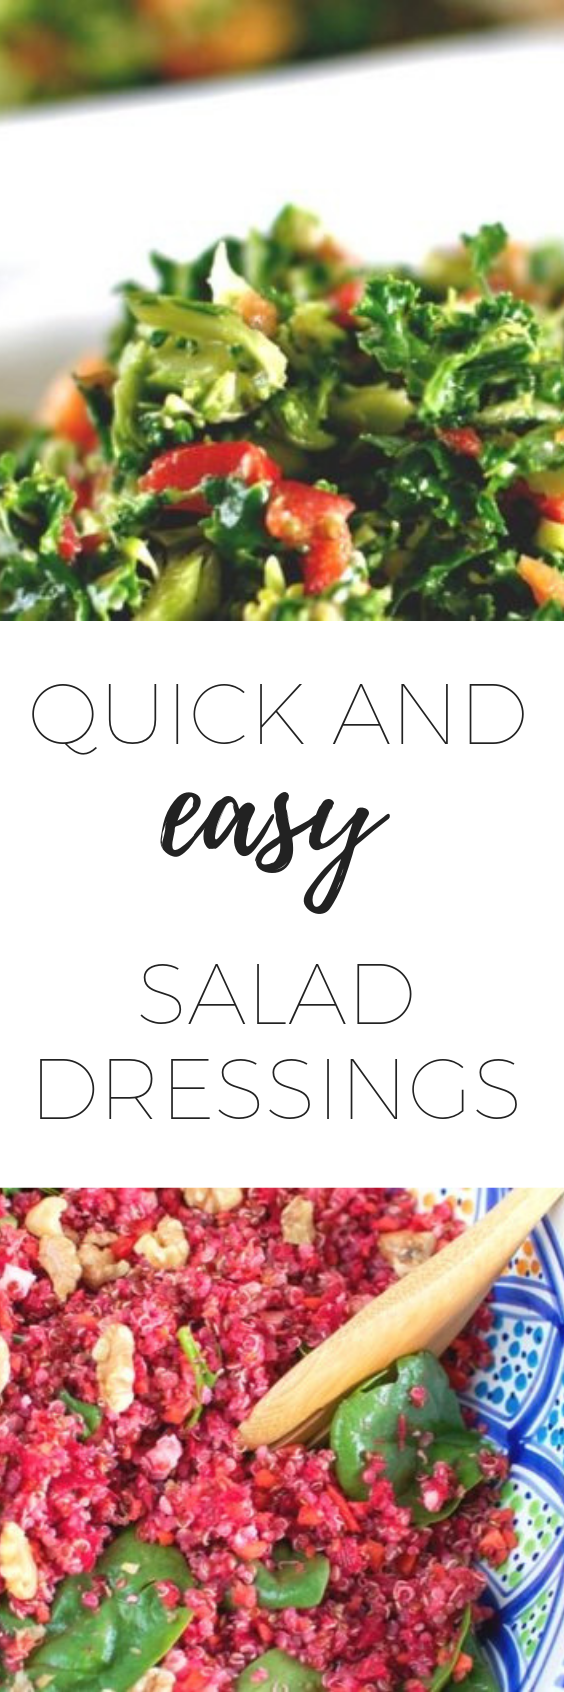 Quick and easy salad dressings